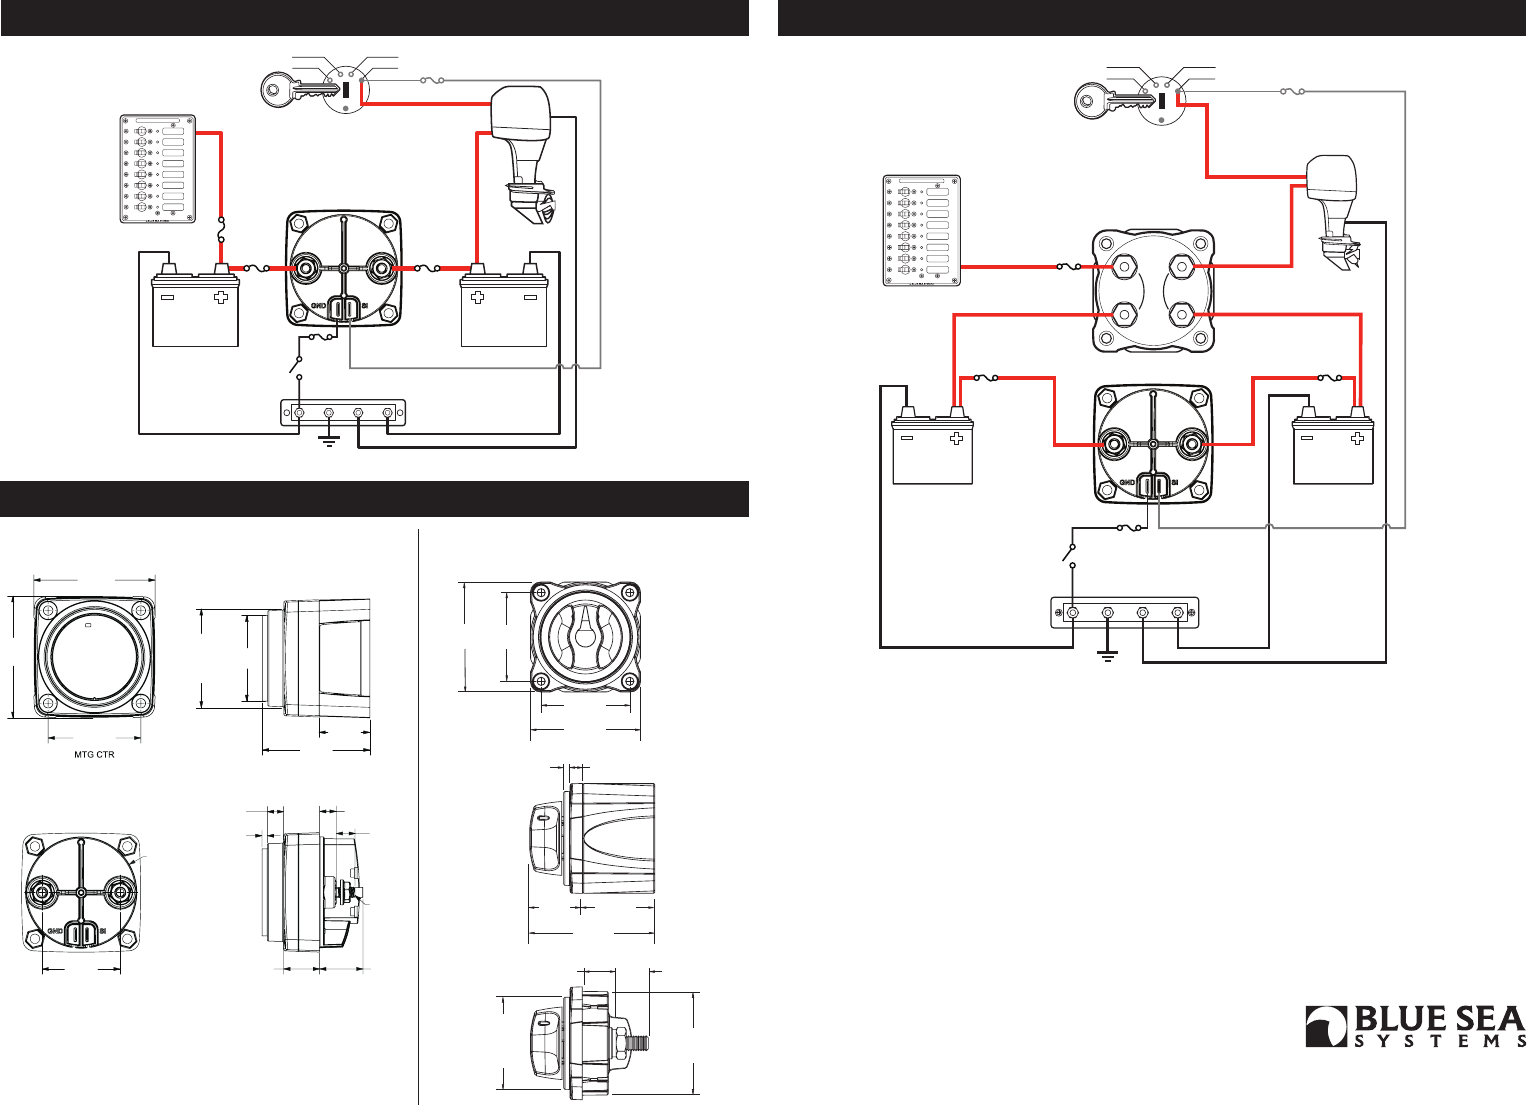 698b66bd 7897 4fe8 89cb 6270acd04f78 bg2 page 2 of blue sea systems stereo system m acr 7601 user guide blue sea systems wiring diagrams at reclaimingppi.co